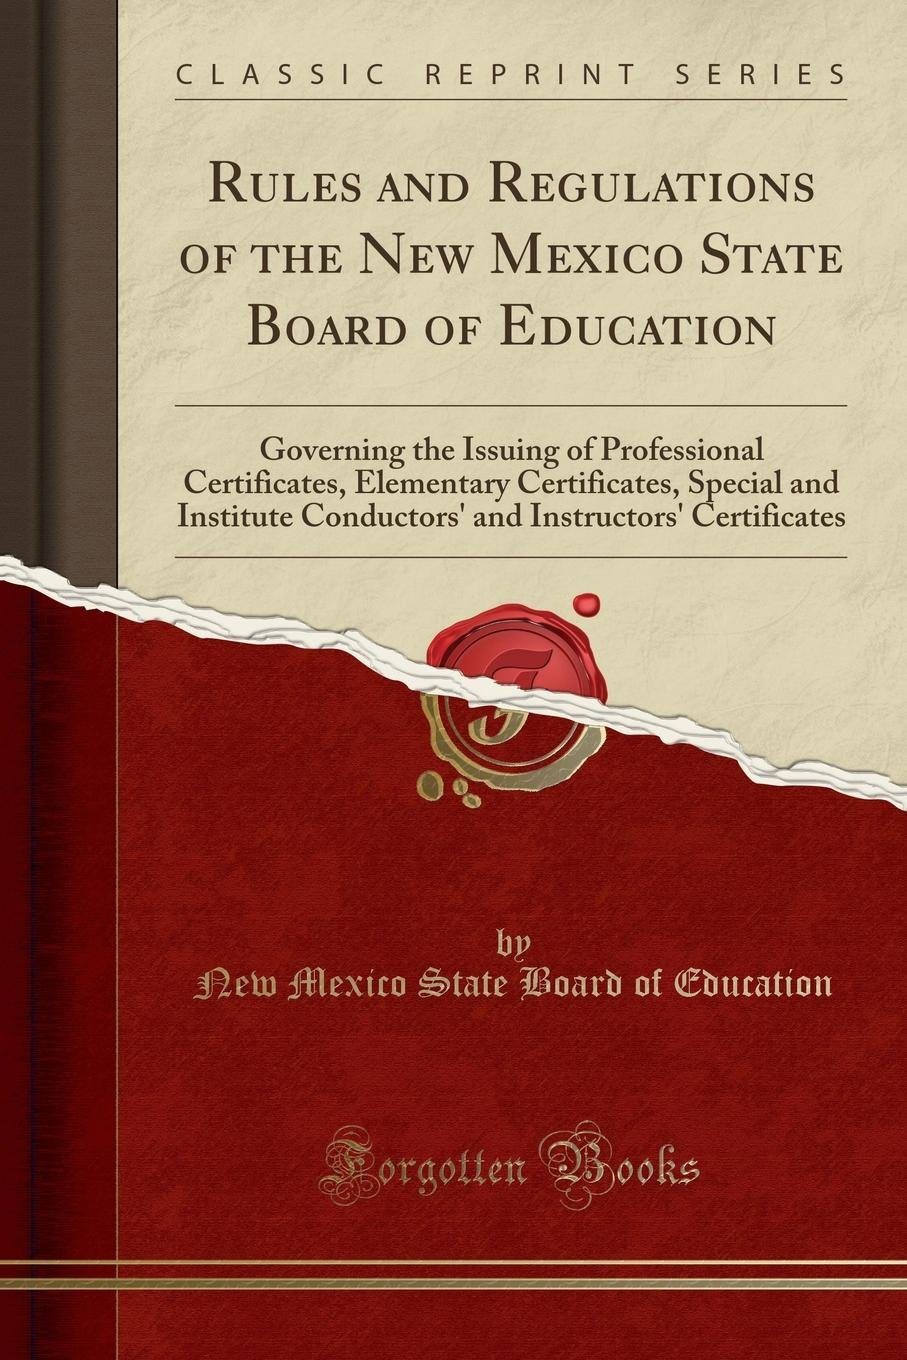 Rules and Regulations of the New Mexico State Board of Education: Governing the Issuing of Professional Certificates, Elementary Certificates, Special ... Instructors' Certificates (Classic Reprint) PDF